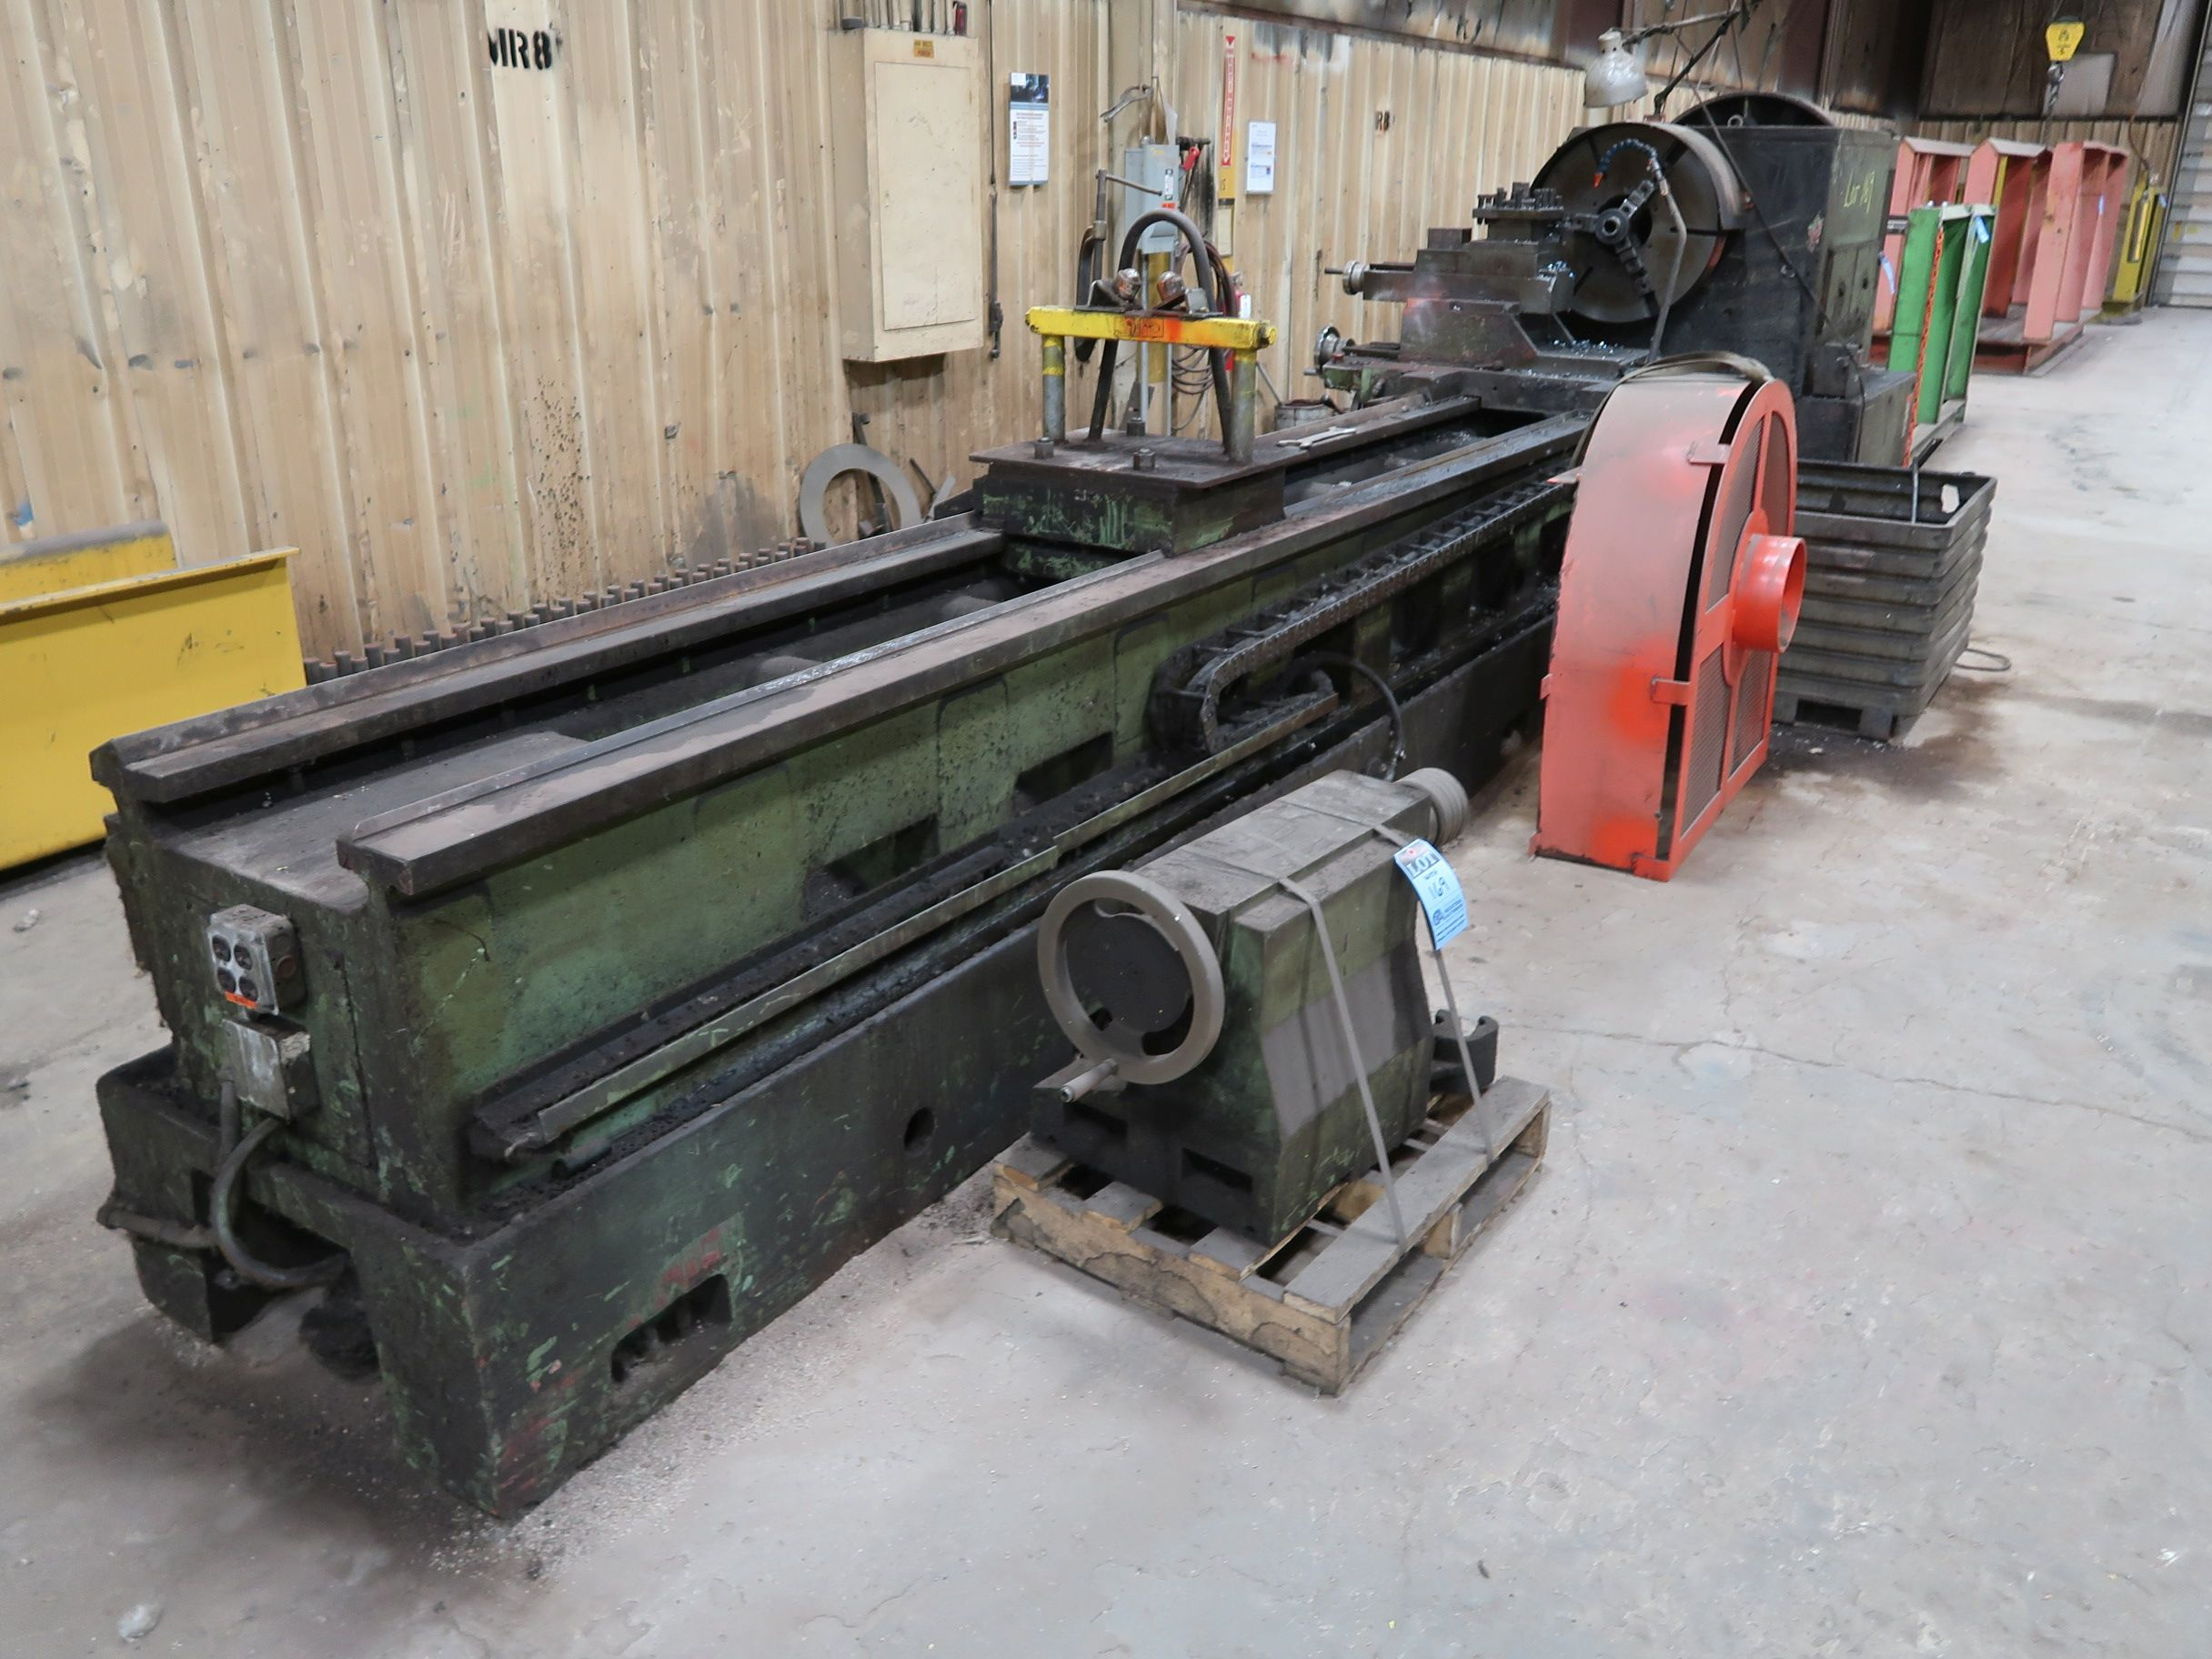 """40"""" X 160"""" GRUTZPE TIMEMASTER MODEL 4000/500 DOUBLE CHUCK ENGINE LATHE; SPEEDS TO 500 RPM, APPROX. - Image 2 of 14"""